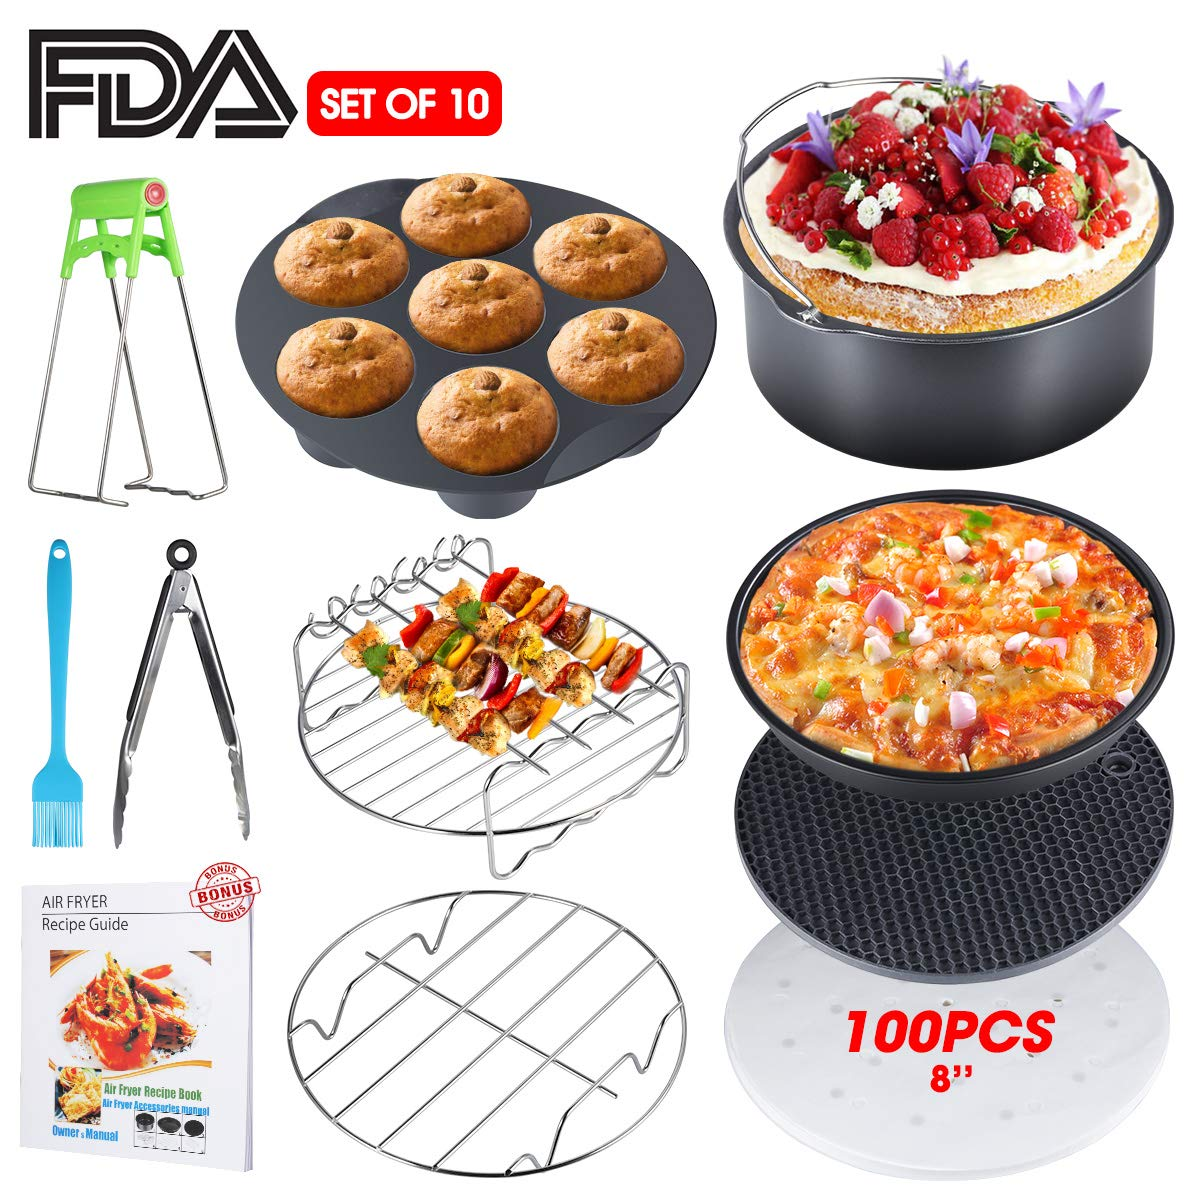 Air Fryer Accessories, XL Air Fryer Accessories with Recipe Cookbook for Gowise Phillips USA Cozyna Airfryer, Set of 11, Deep Fryer Accessories, Fit all 3.7QT-5.3QT-5.8QT-6.8QT, FDA Approved, BPA Free